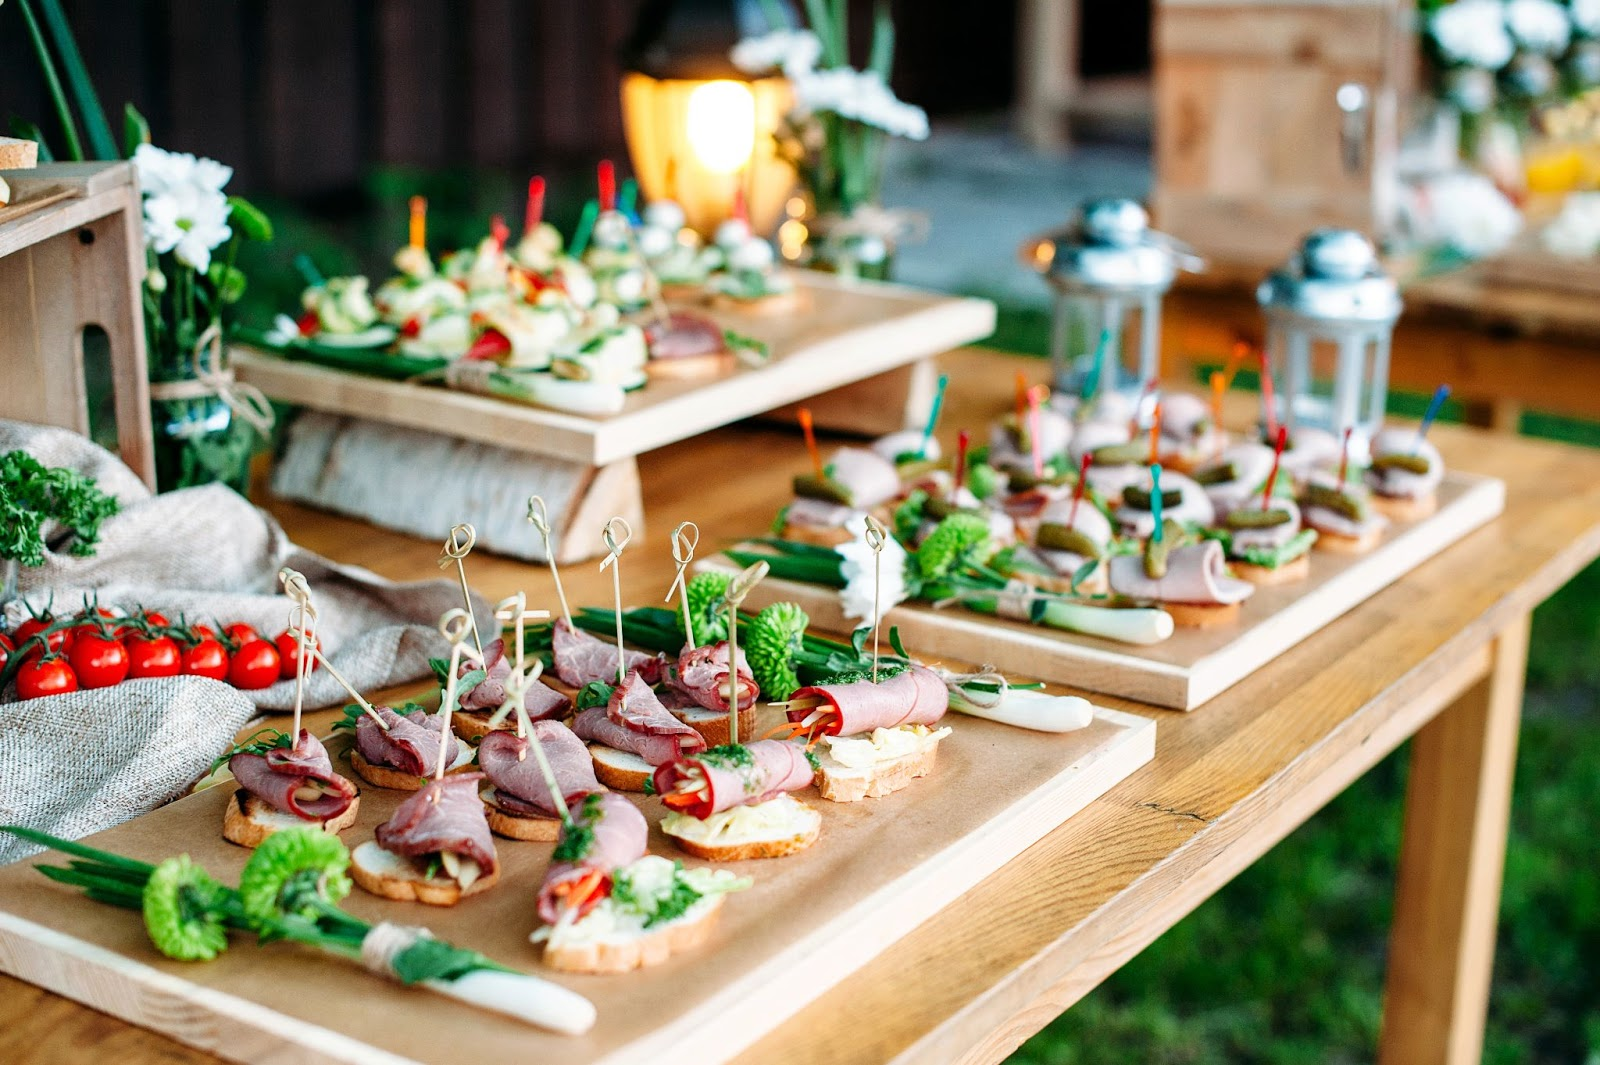 Table with finger foods